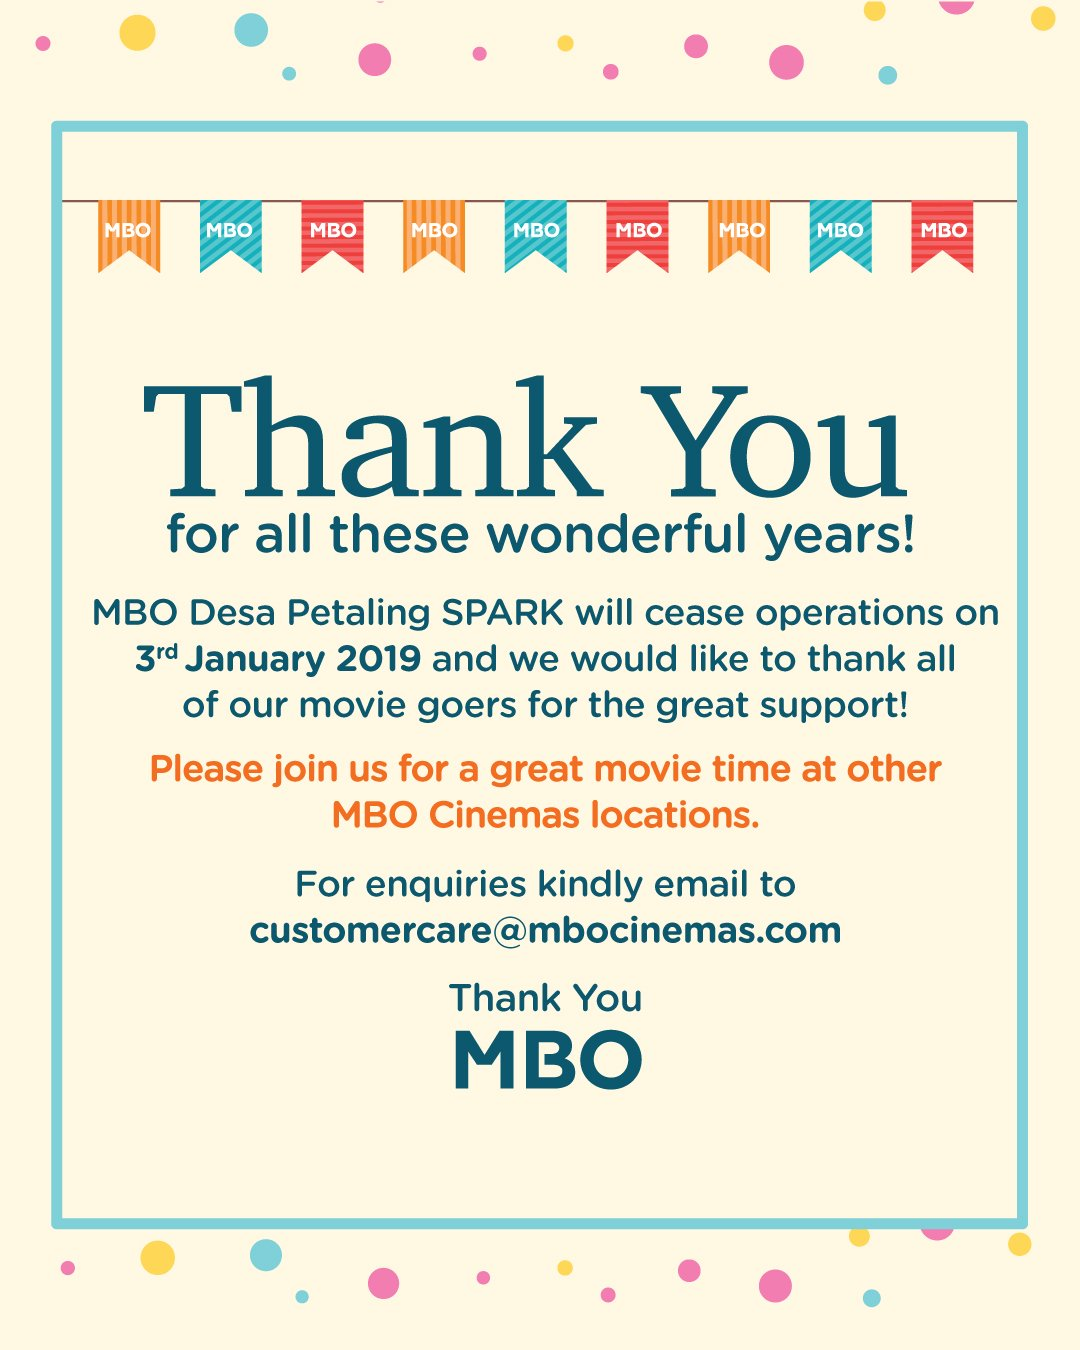 Mbo Cinemas On Twitter Dear All Kindly Take Note On Below Mbo Desa Petaling Spark Has Ceased Operations From Today 3rd January 2018 Thank You Https T Co Z4nfxc6tni